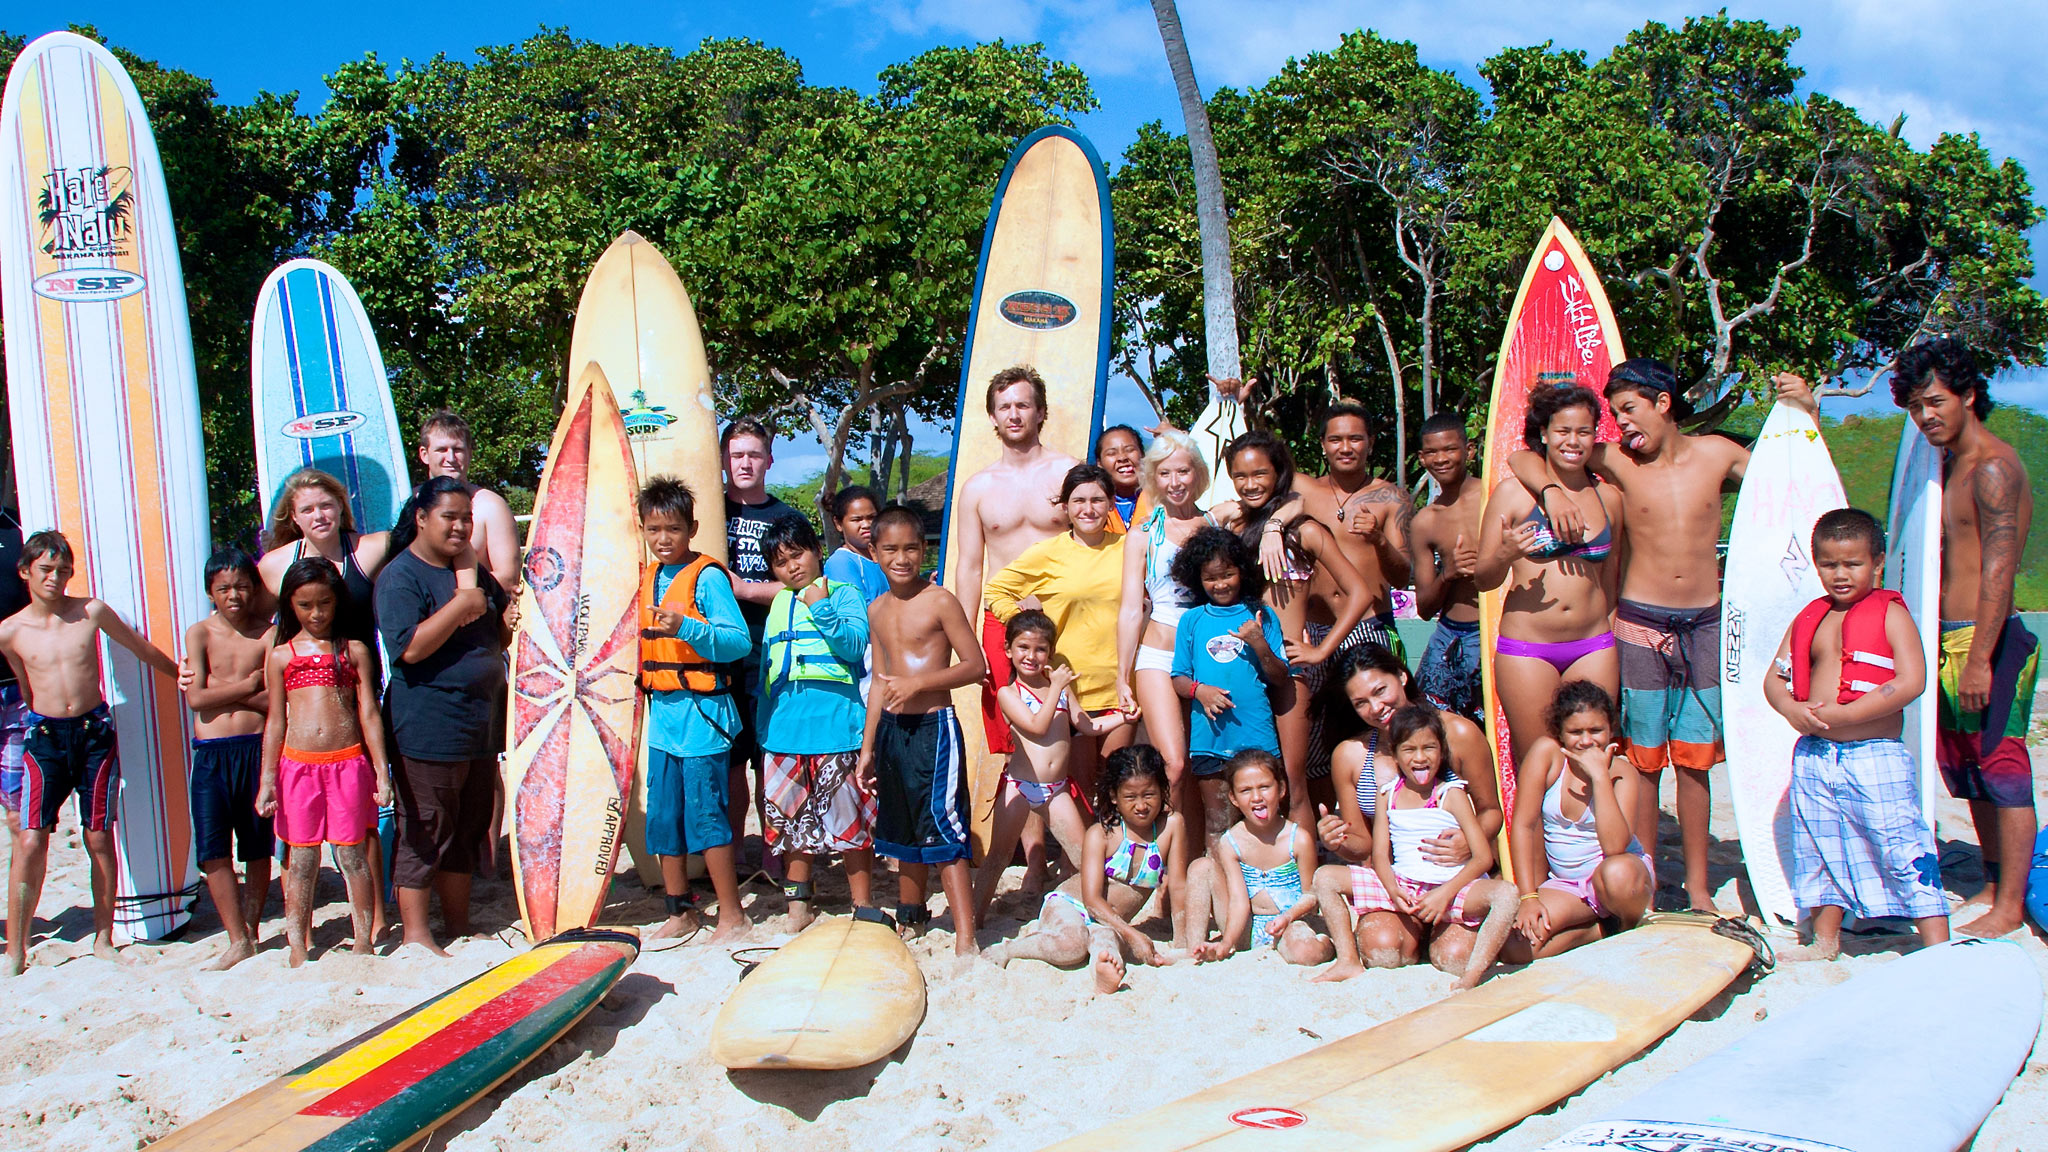 Ocean Lotus Hawaii founder Nichole DeWald poses with her fellow volunteers and the keiki after a session in Waikiki.